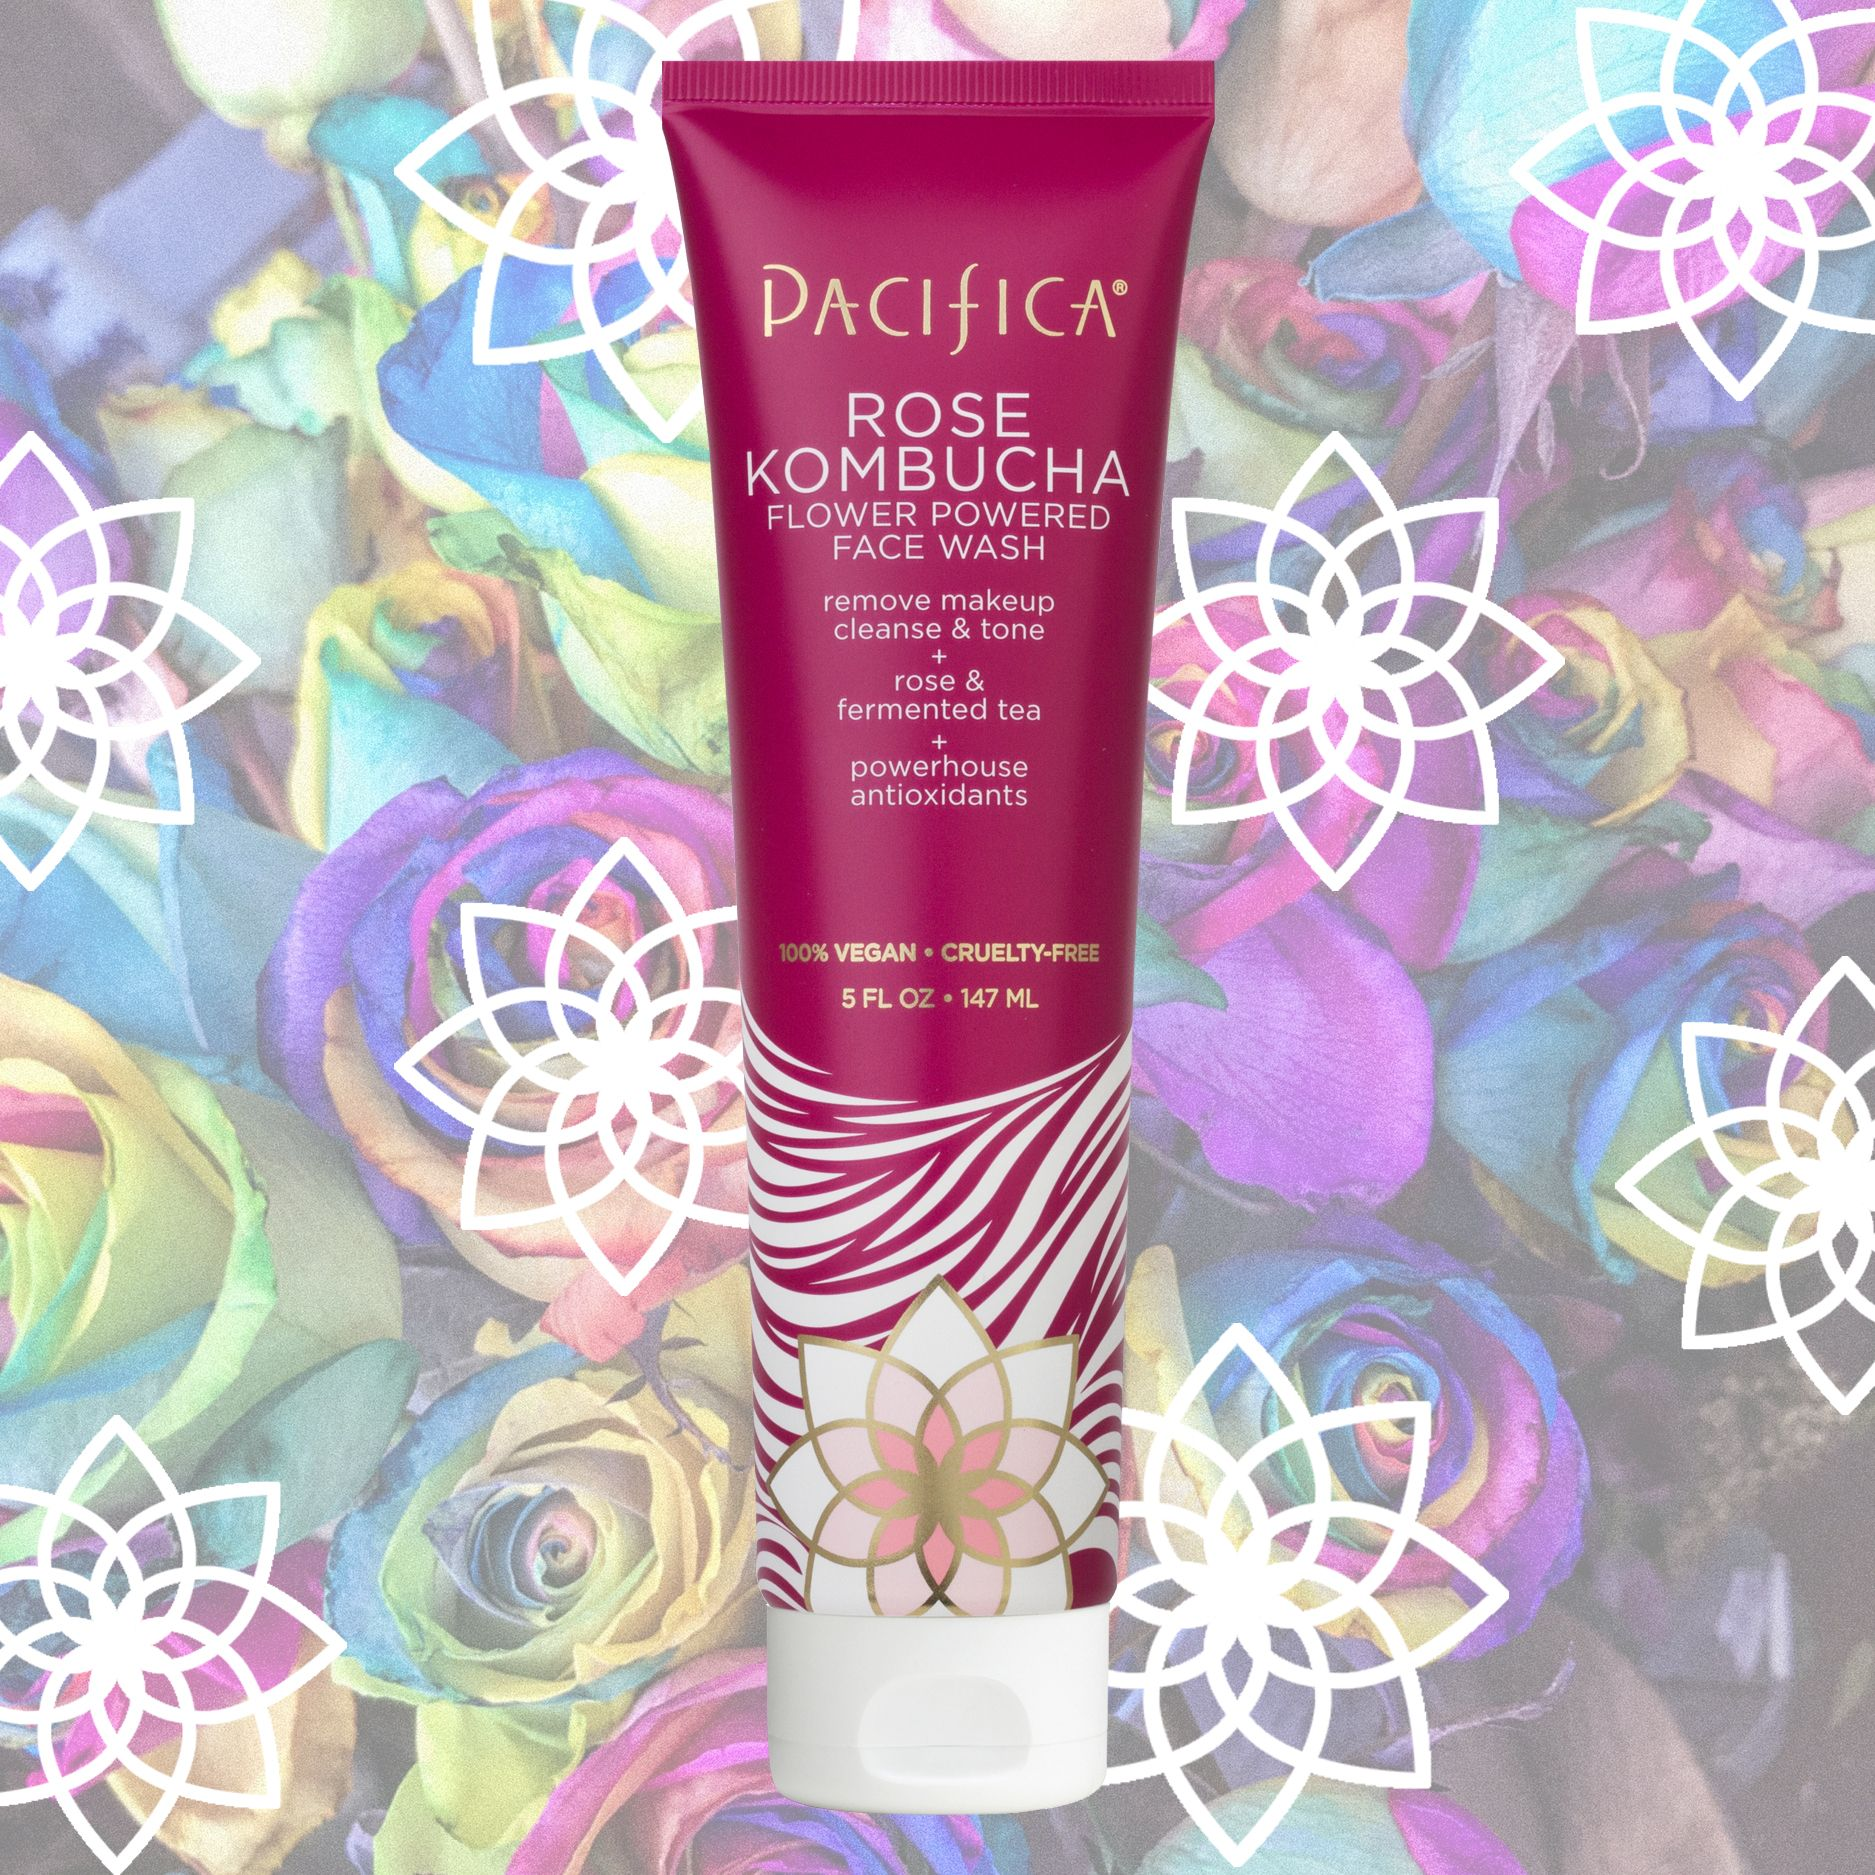 Pacifica Rose Kombucha Flower Powered Face Wash 5 fl oz